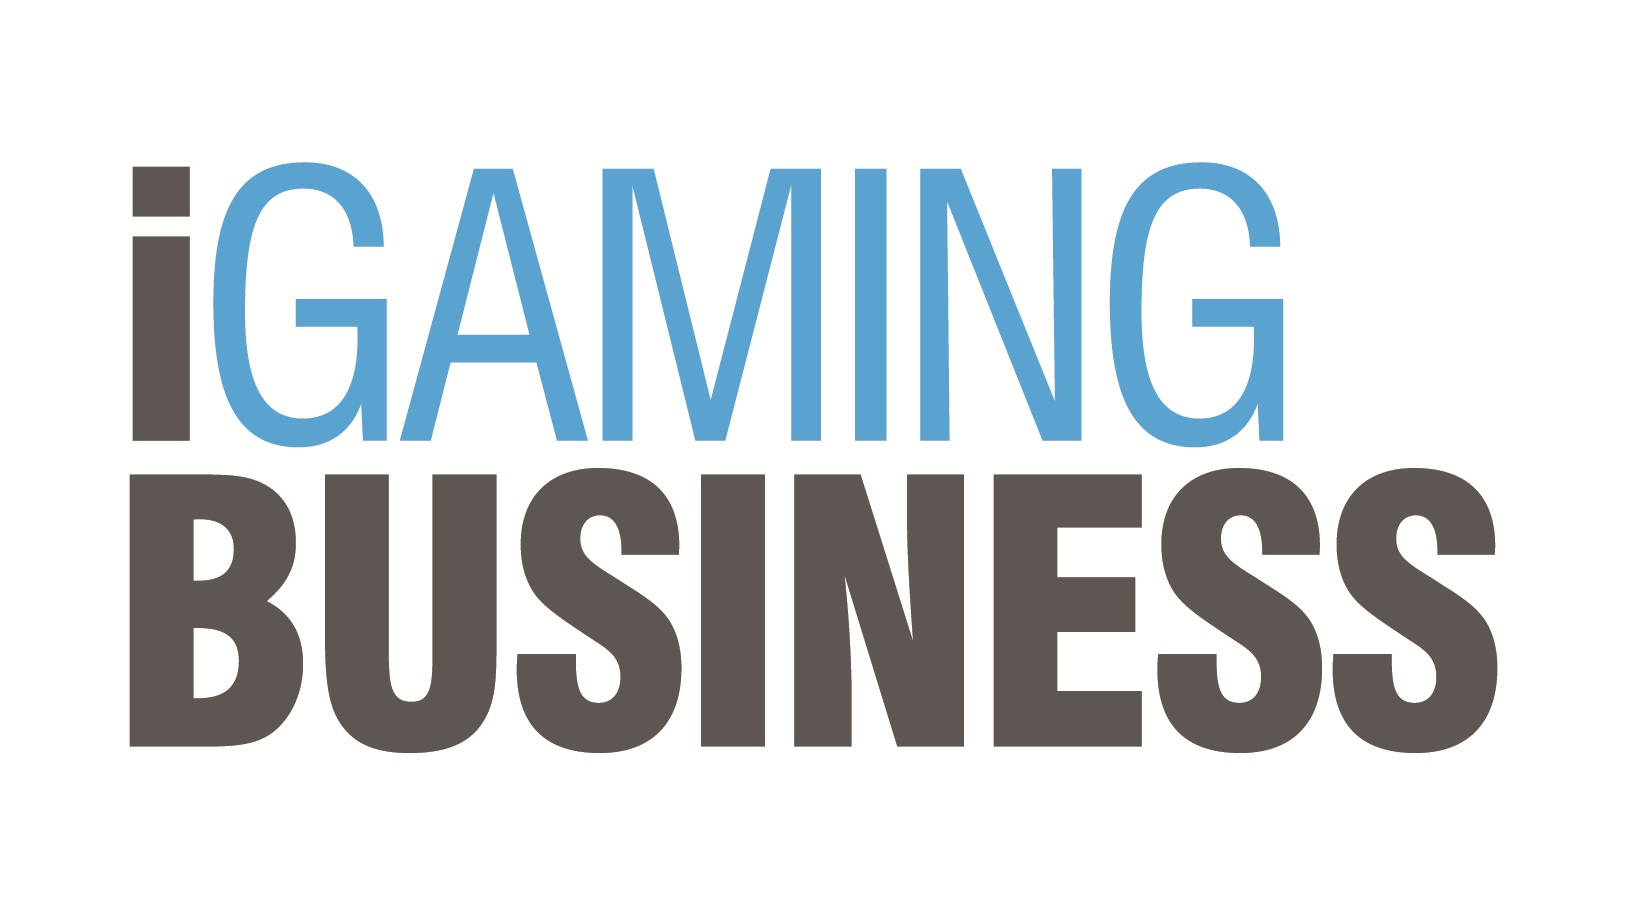 - iGaming Business has been the leading specialist iGaming publisher and information provider to the iGaming sector through magazines, events, websites and intelligence for over 13 years. With over 16,000 operators, vendors and affiliates regularly reading their information off-line and 75,000 online, iGaming Business is leading publisher in the sector. Please visit www.iGamingBusiness.com for further information.